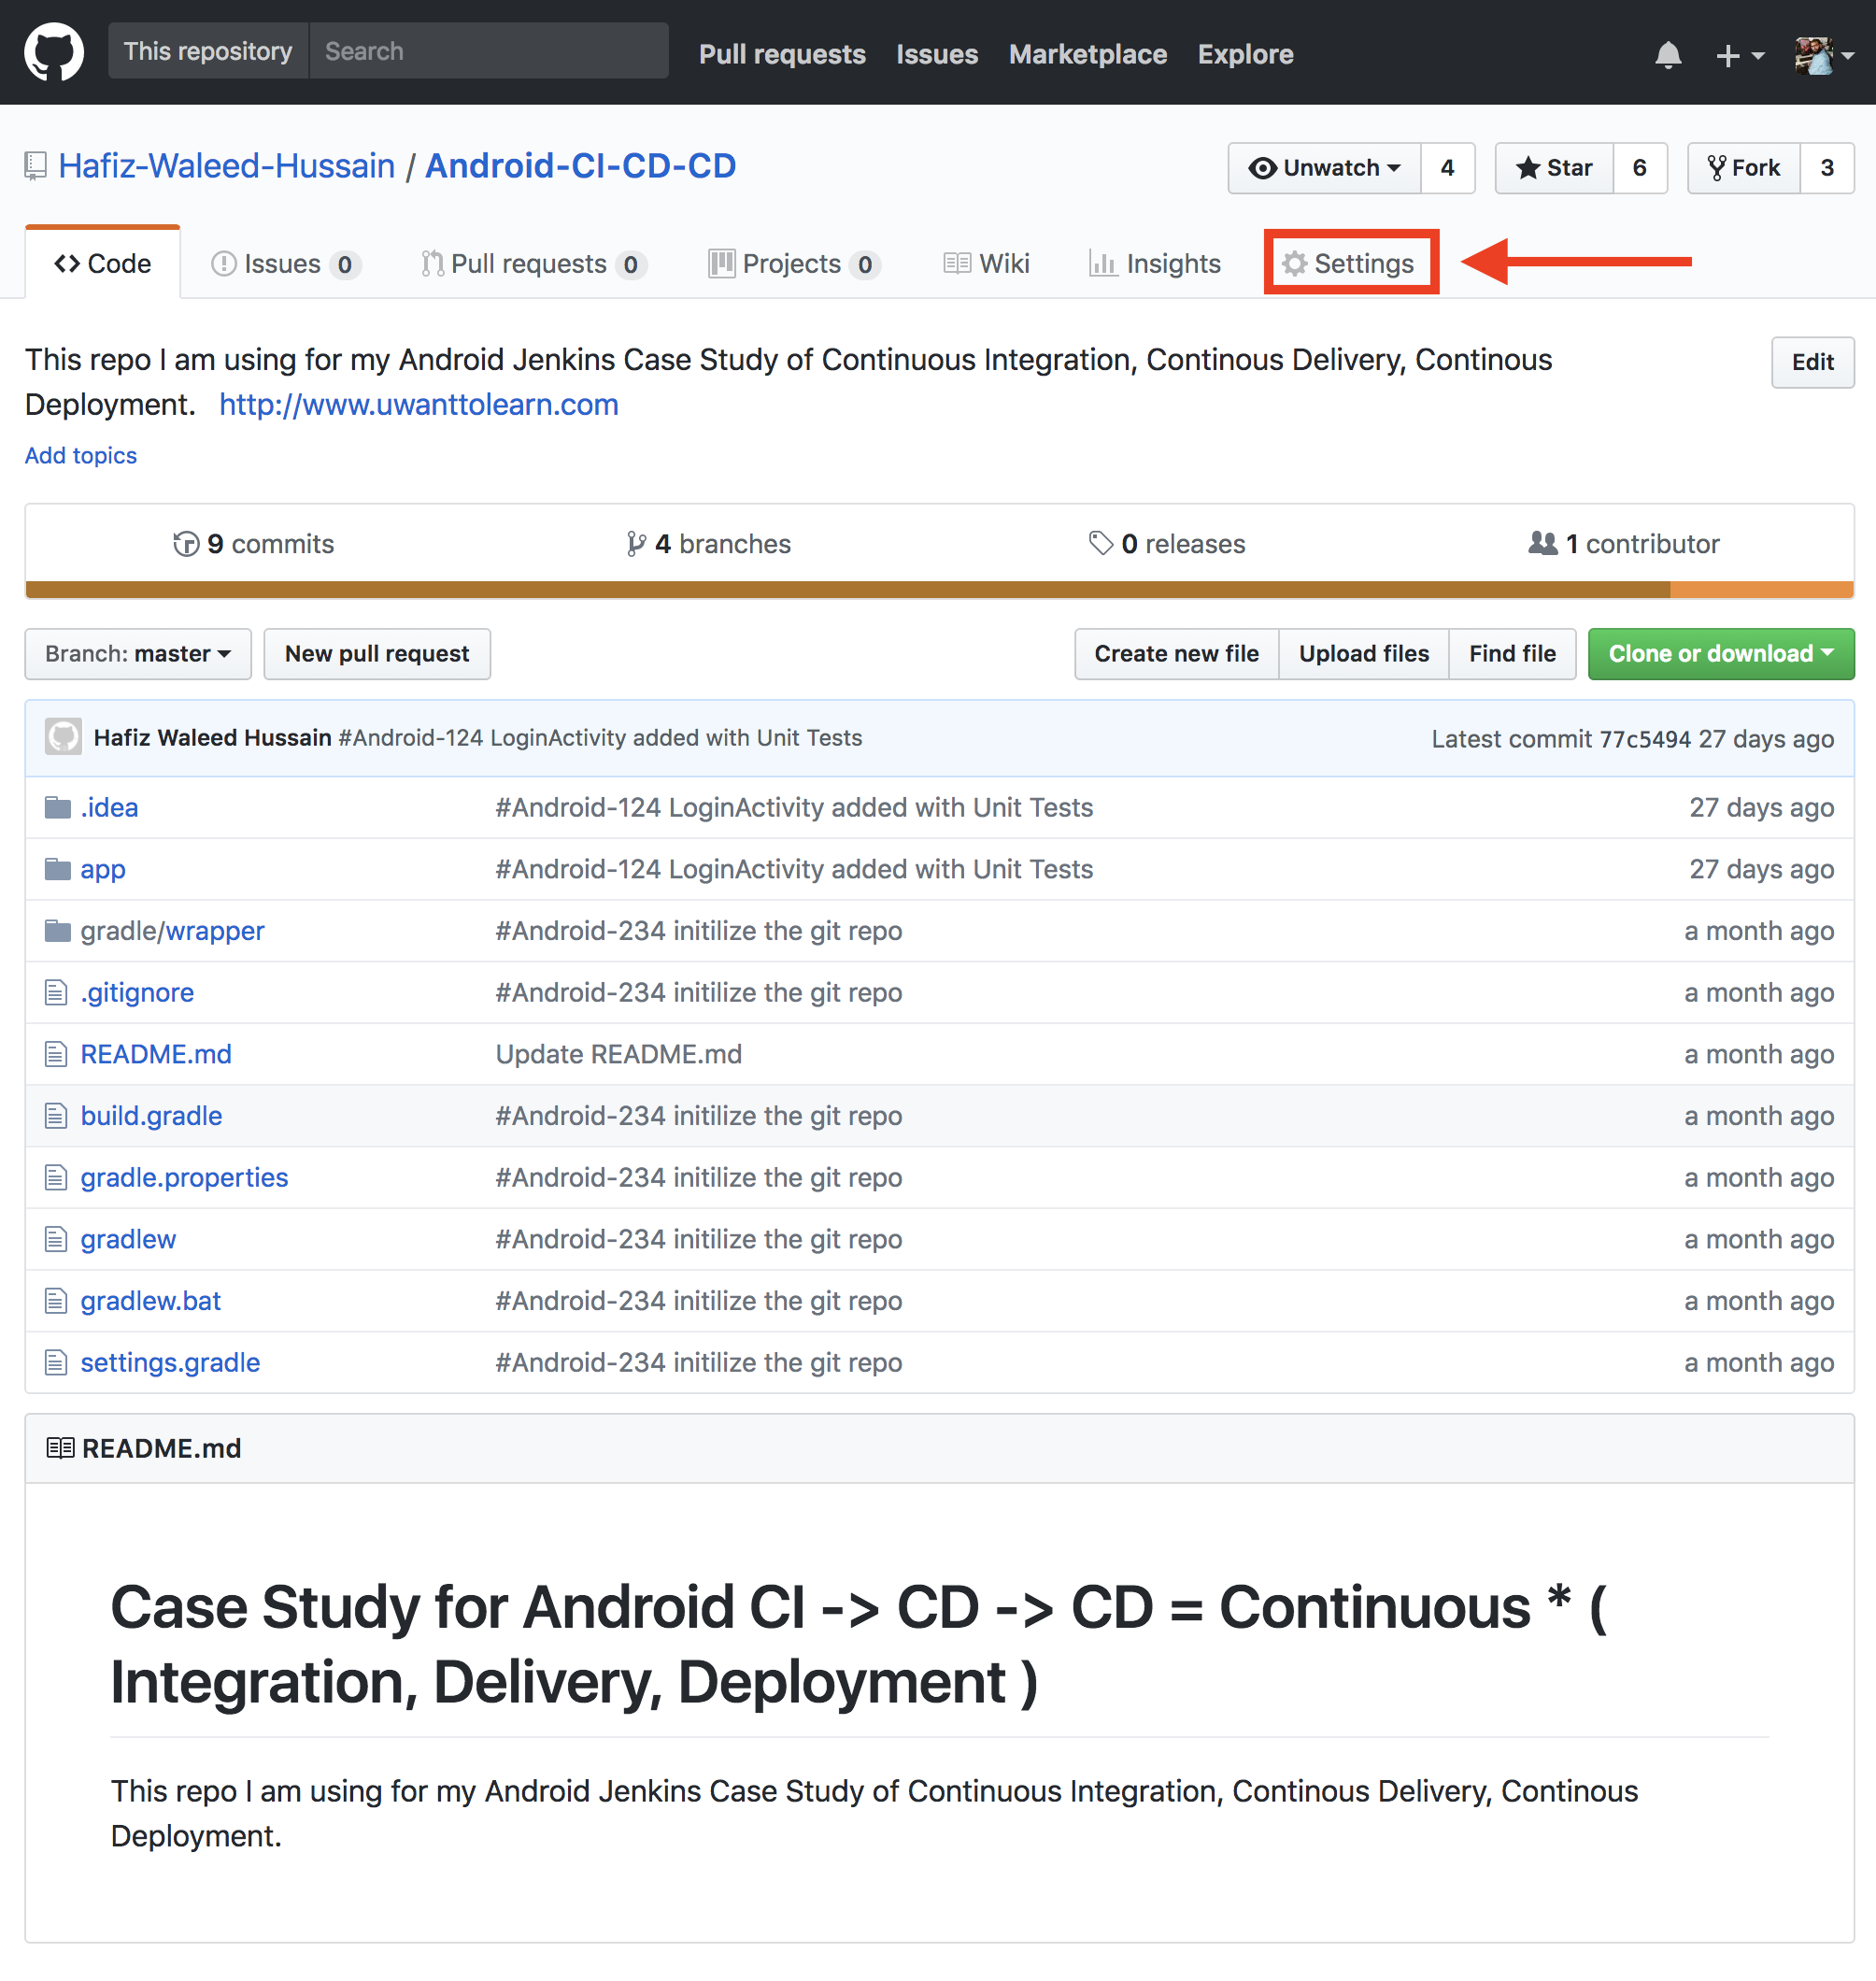 Case Study for Android CI -> CD -> CD = Continuous